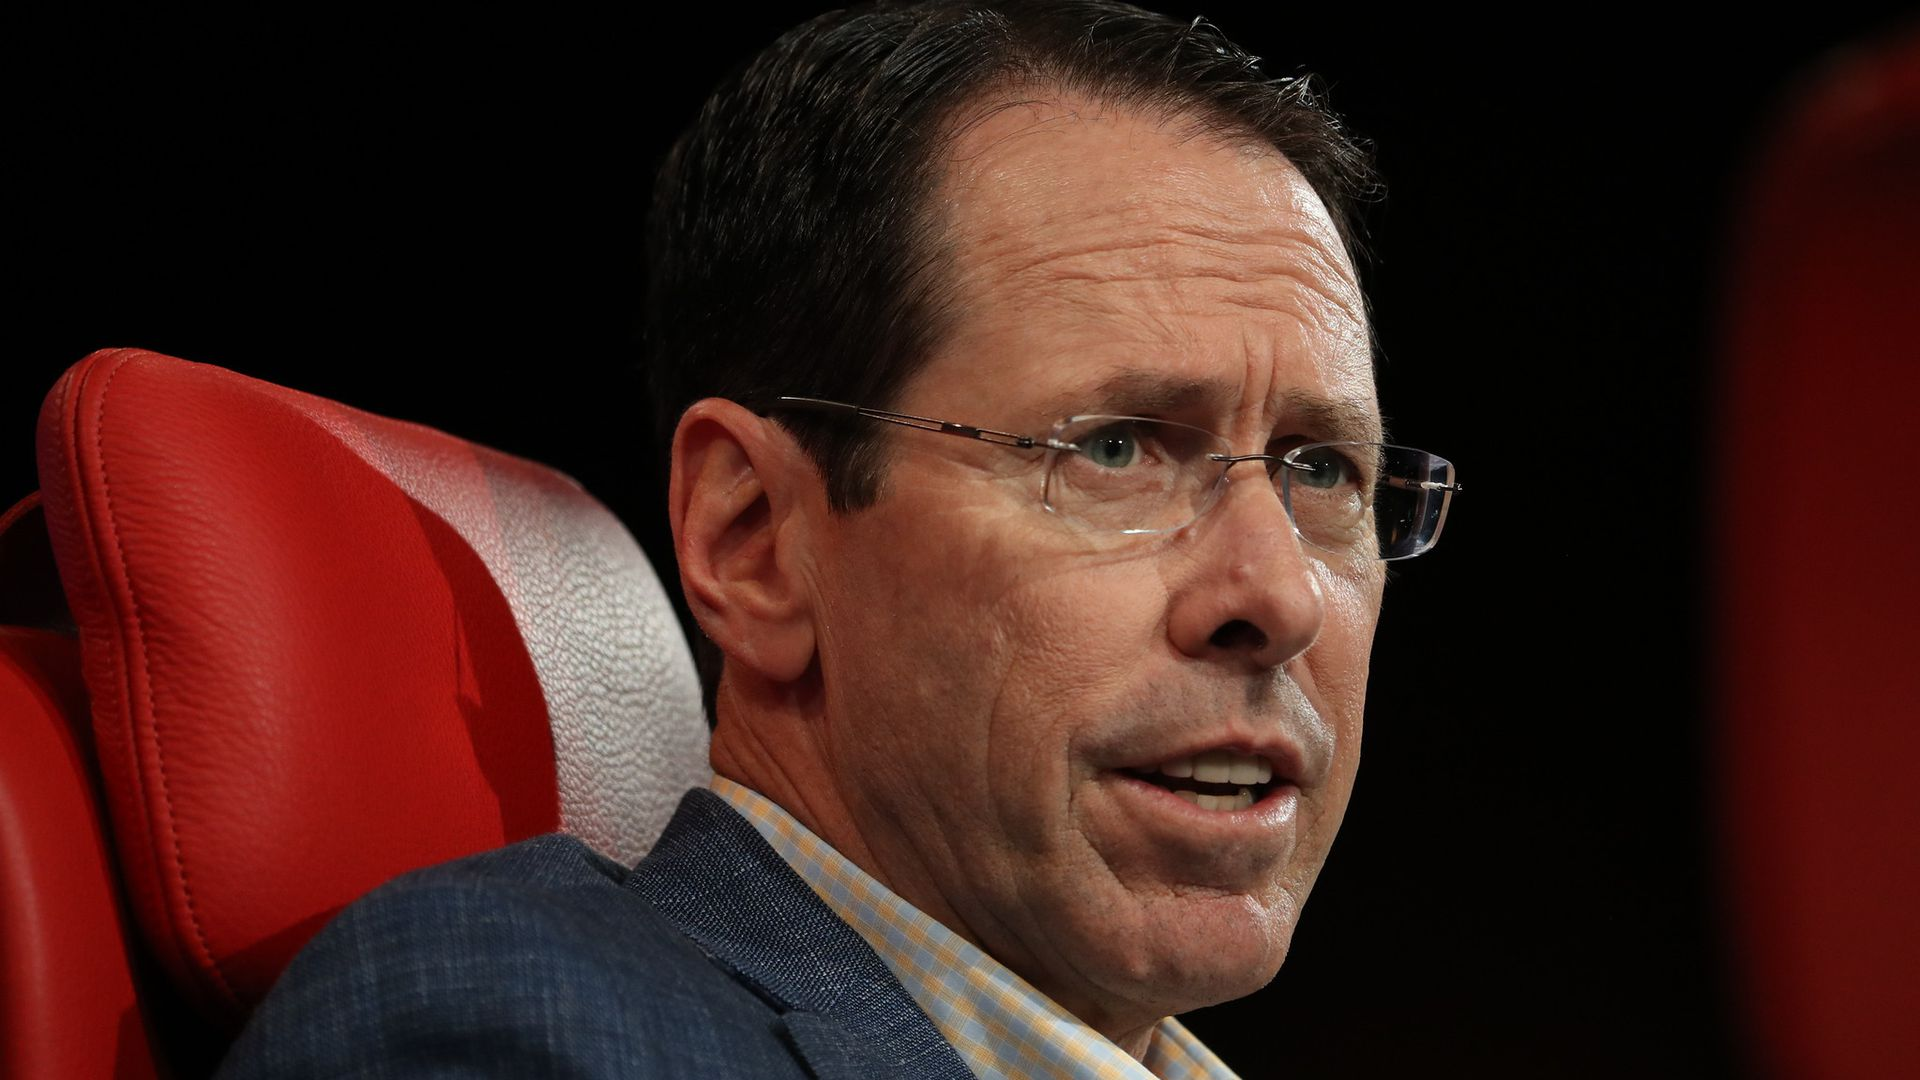 AT&T CEO Randall Stephenson face in closeup